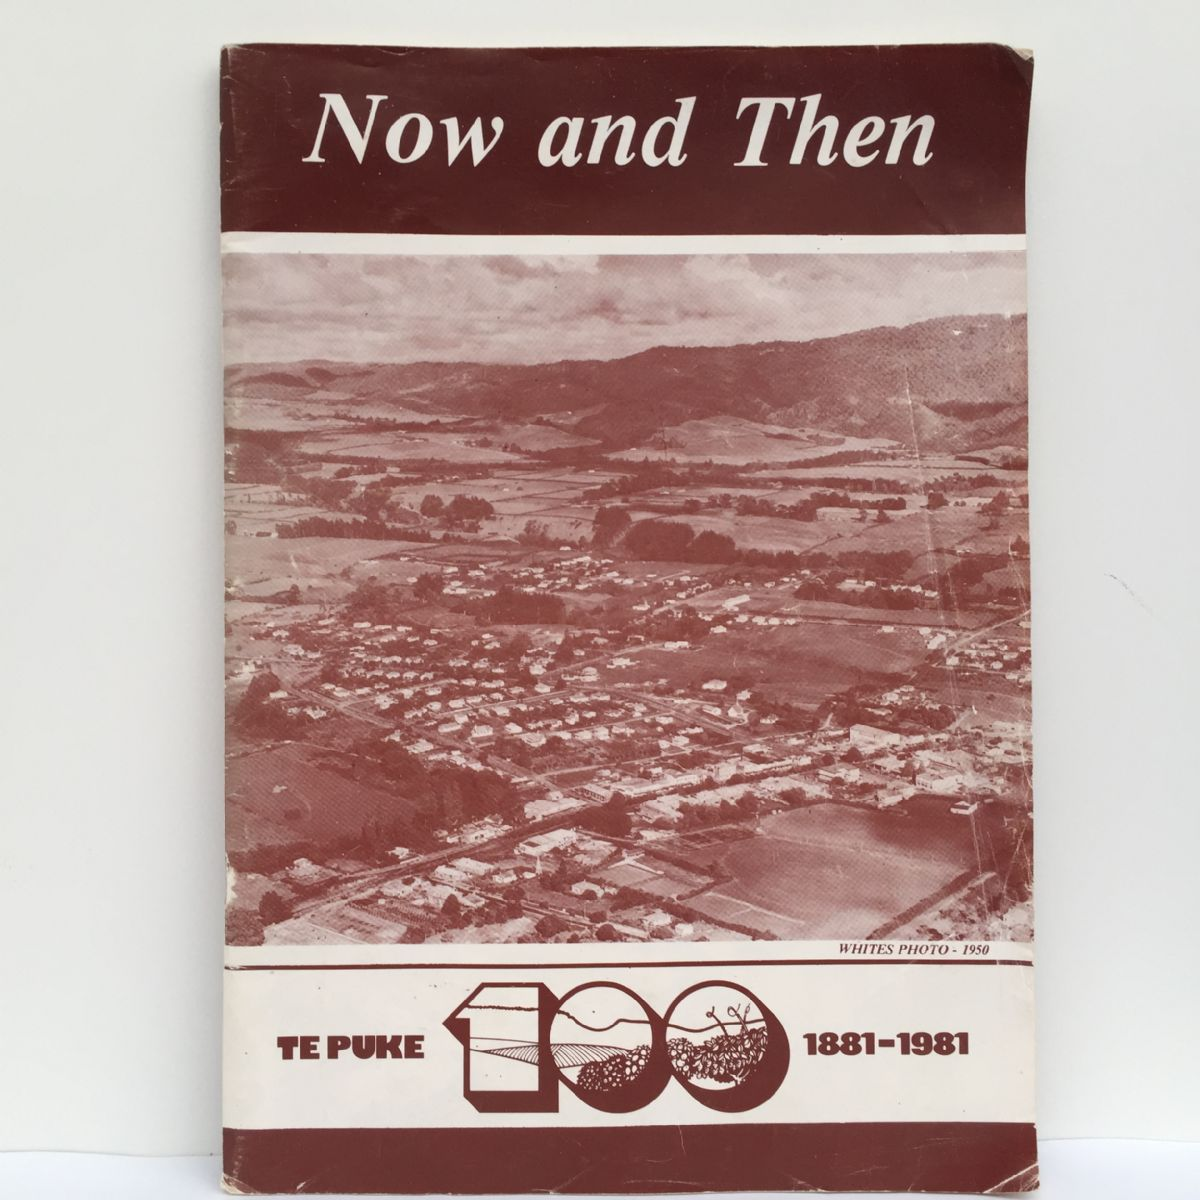 Now and Then : Te Puke 1881-1991